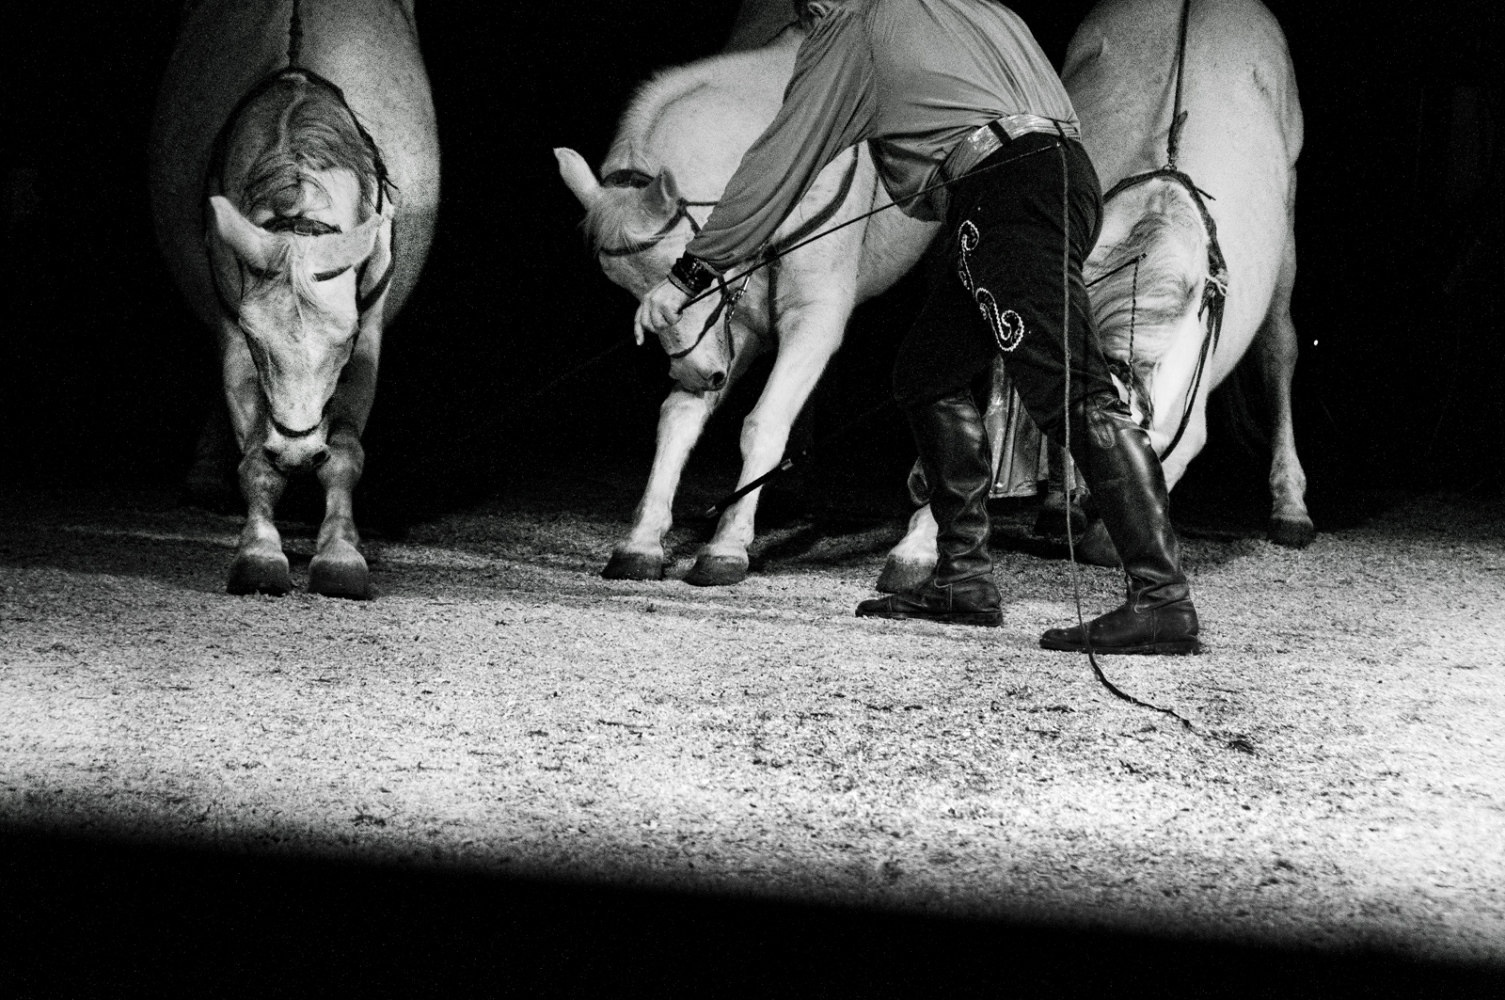 Art and Documentary Photography - Loading nuovoordine03.jpg